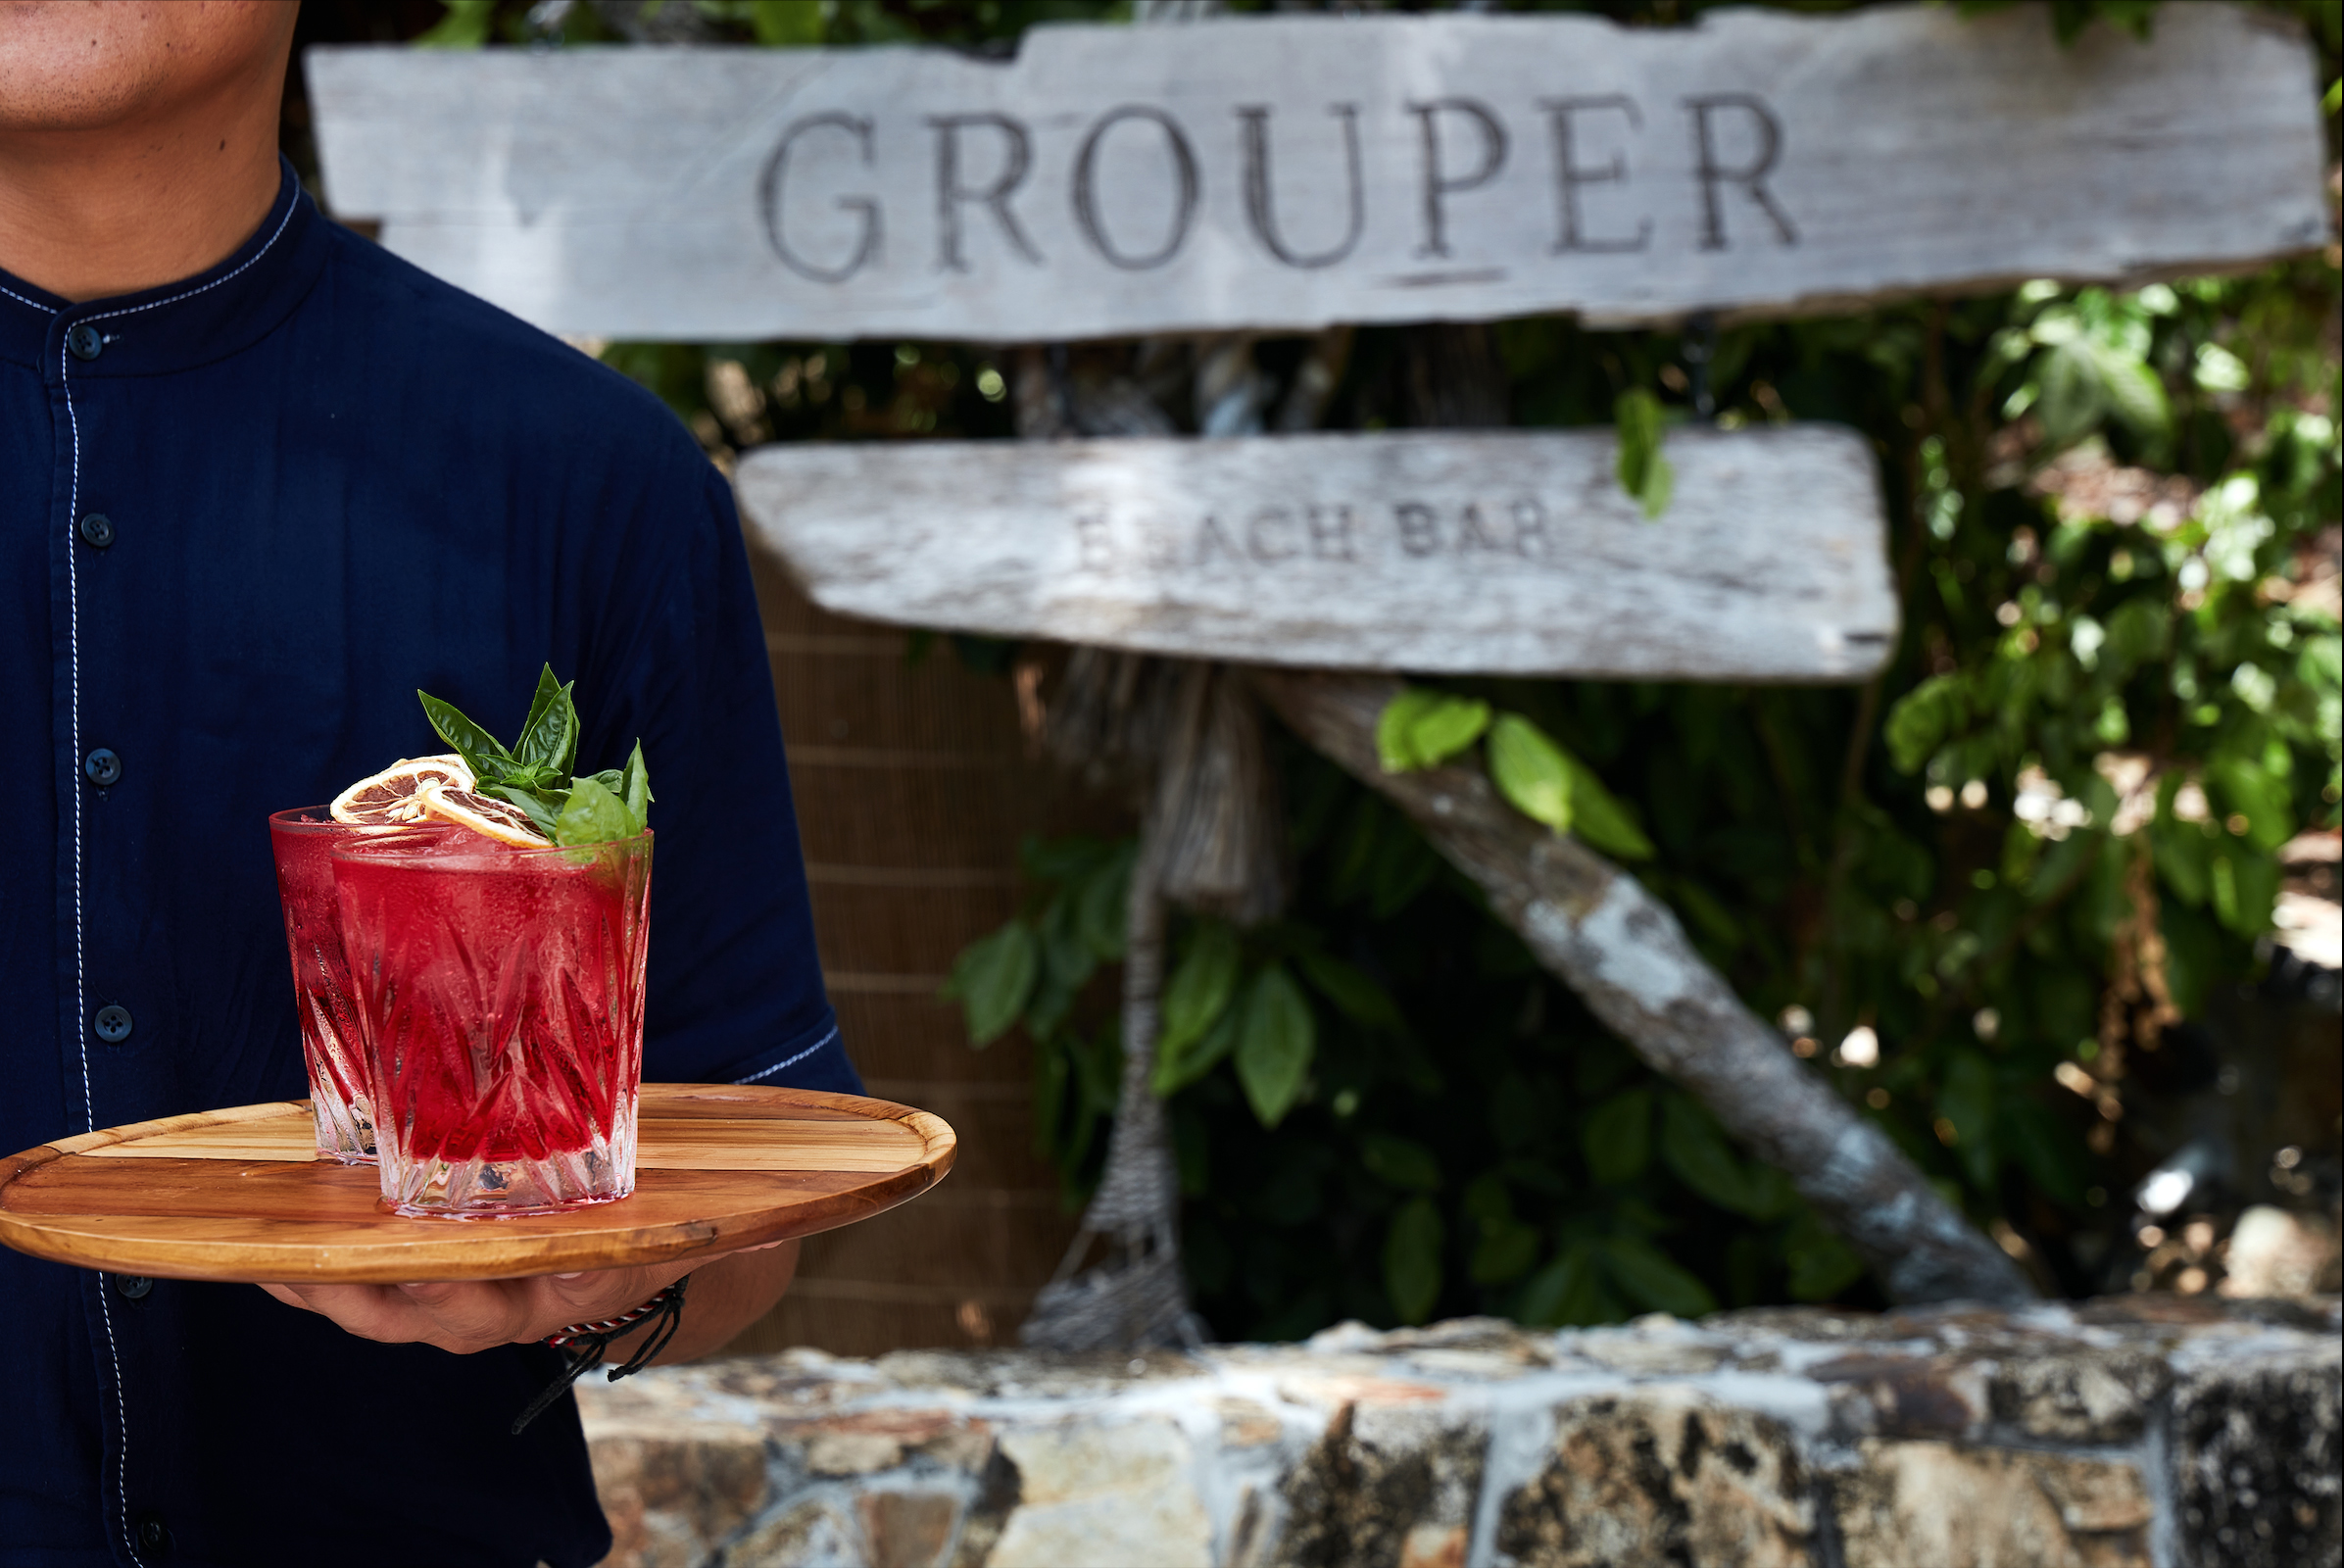 male_staff_holding_tray_with_red_cocktails_grouper_bar_sign_in_background_